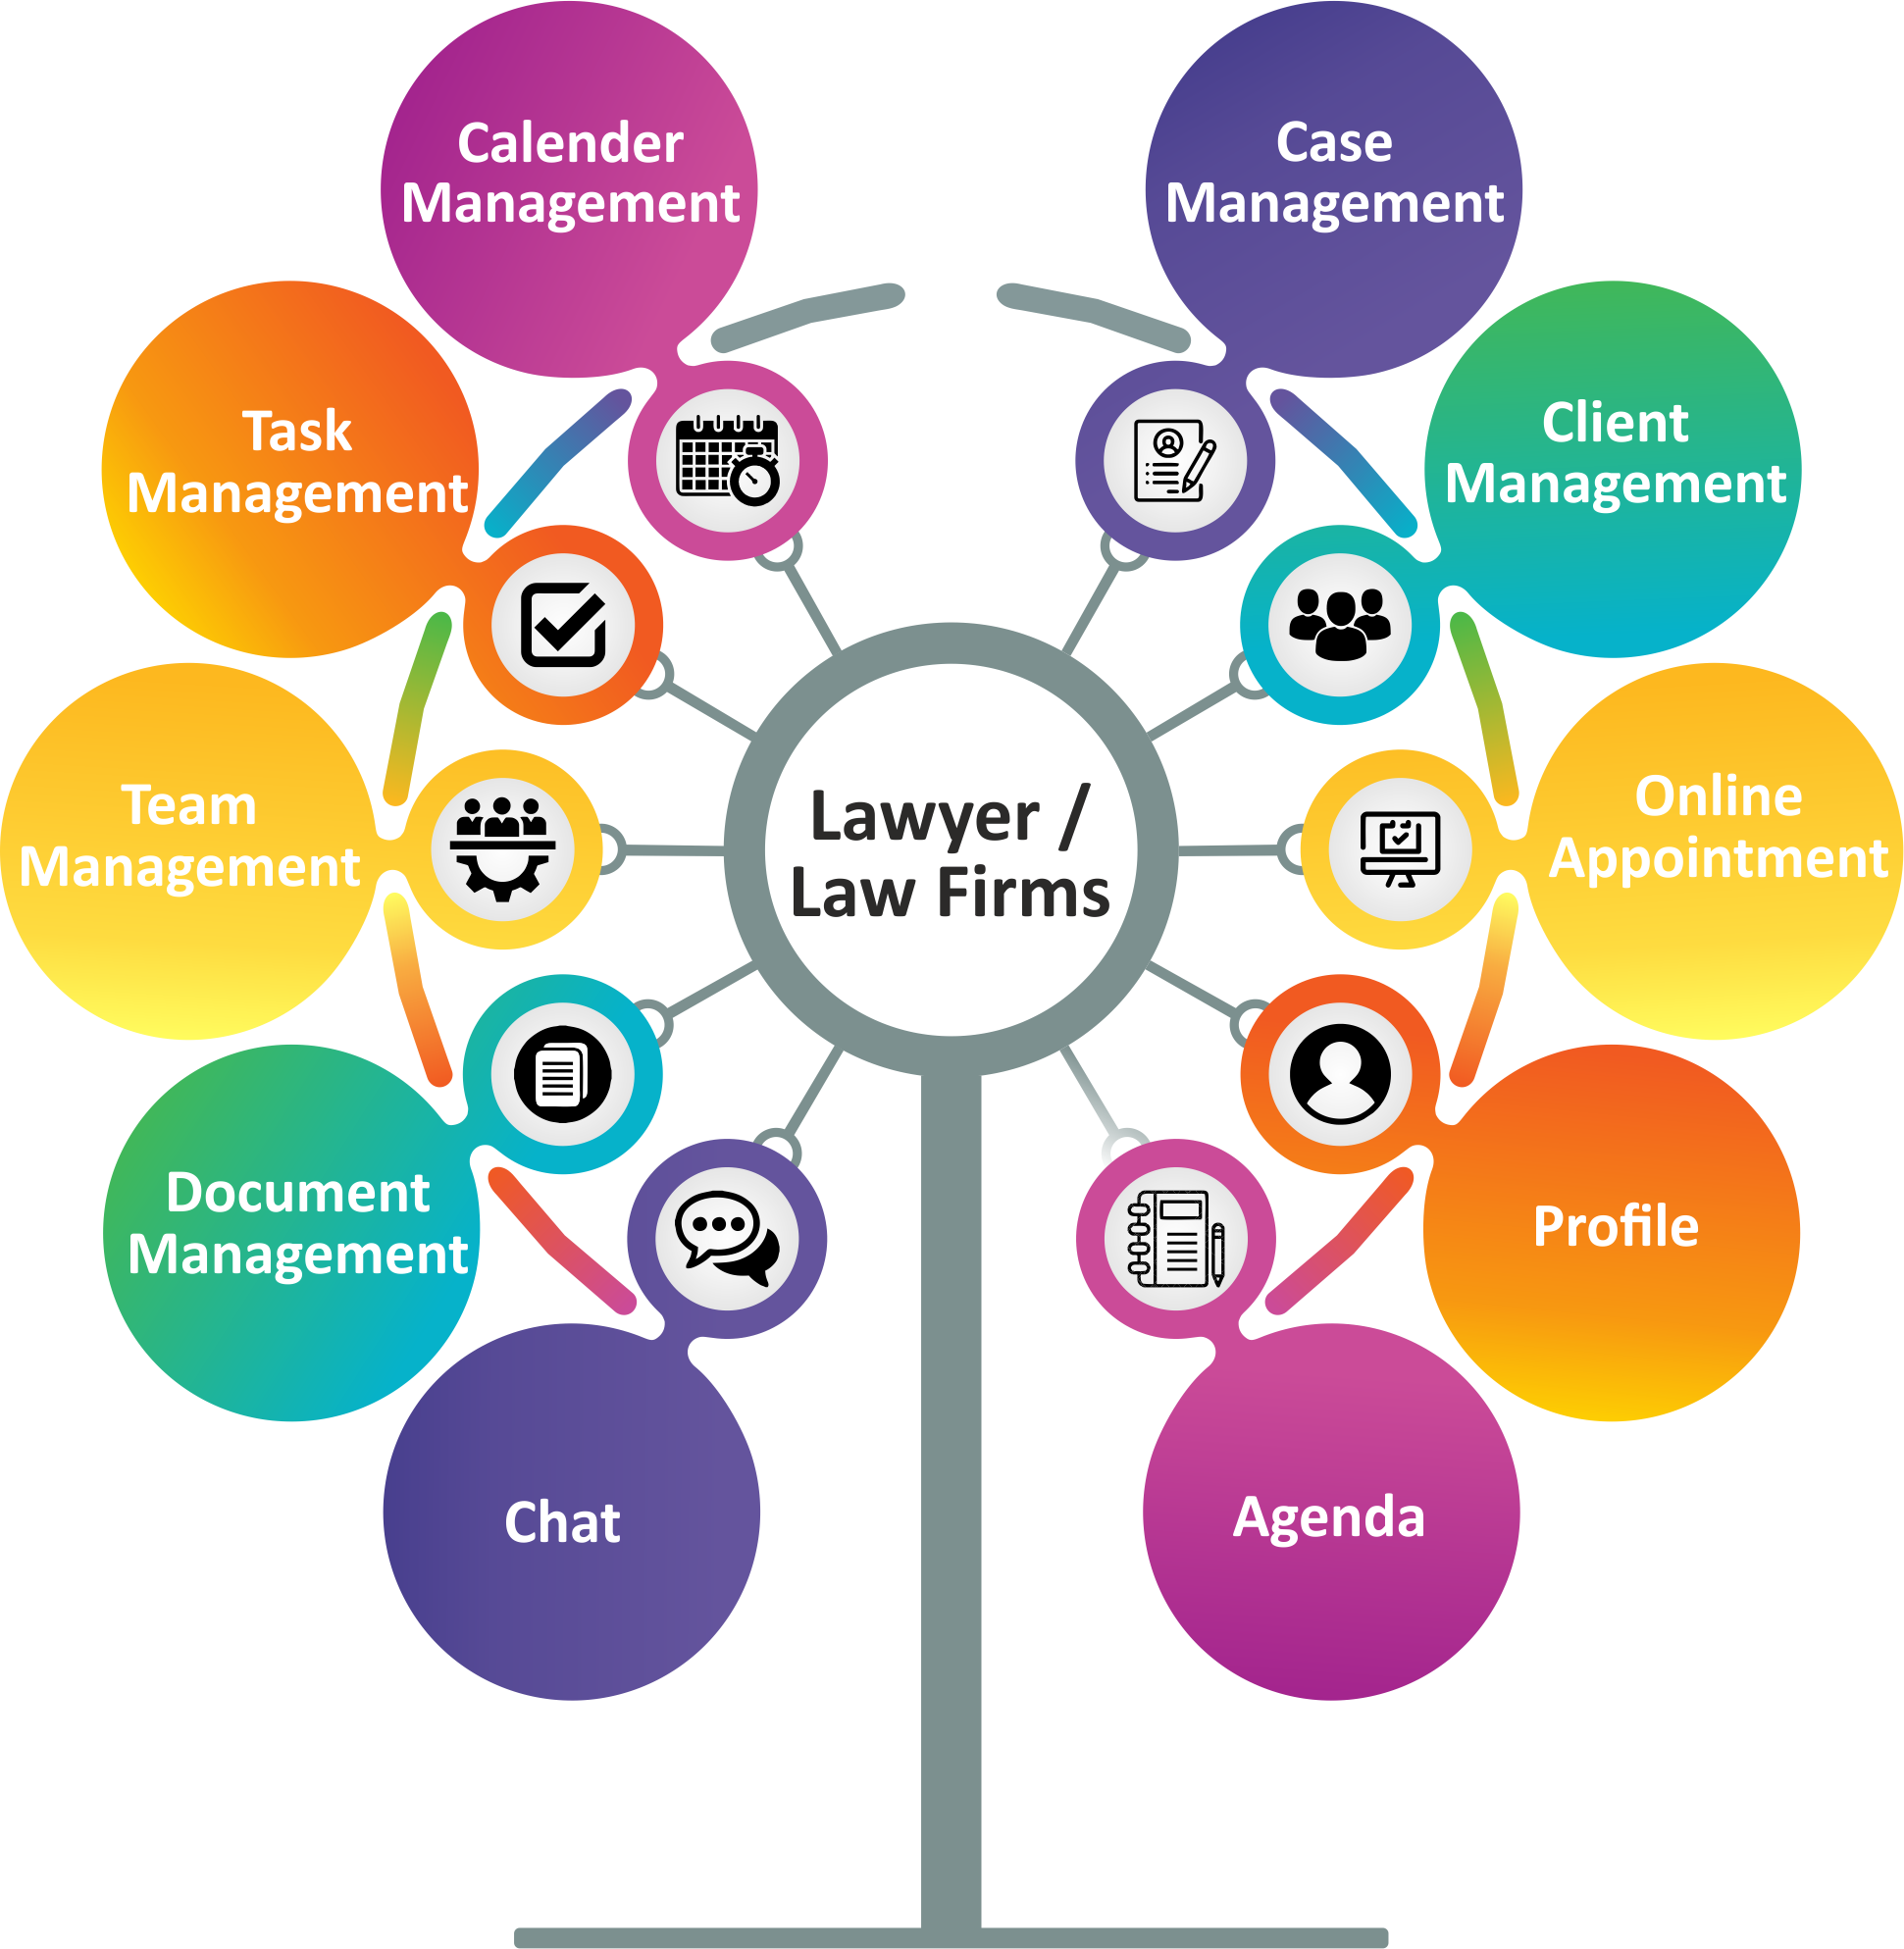 Lawyer-LawFirms in India